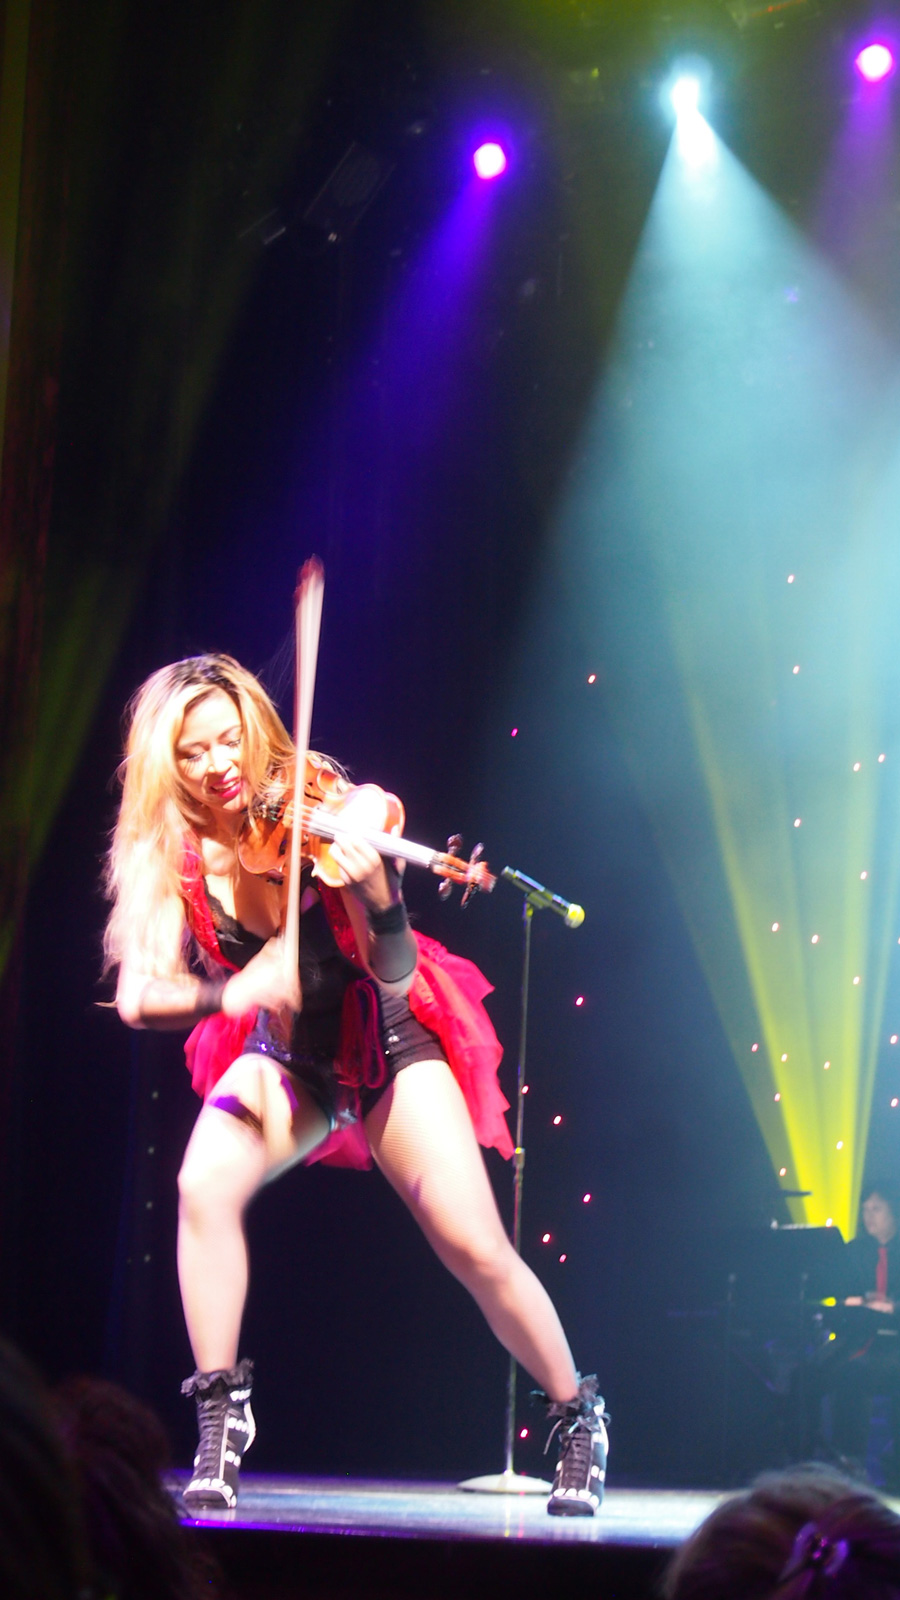 10 days Celebrity Cruise Vacation to Europe - Virtuoso violinist, Analiza Ching